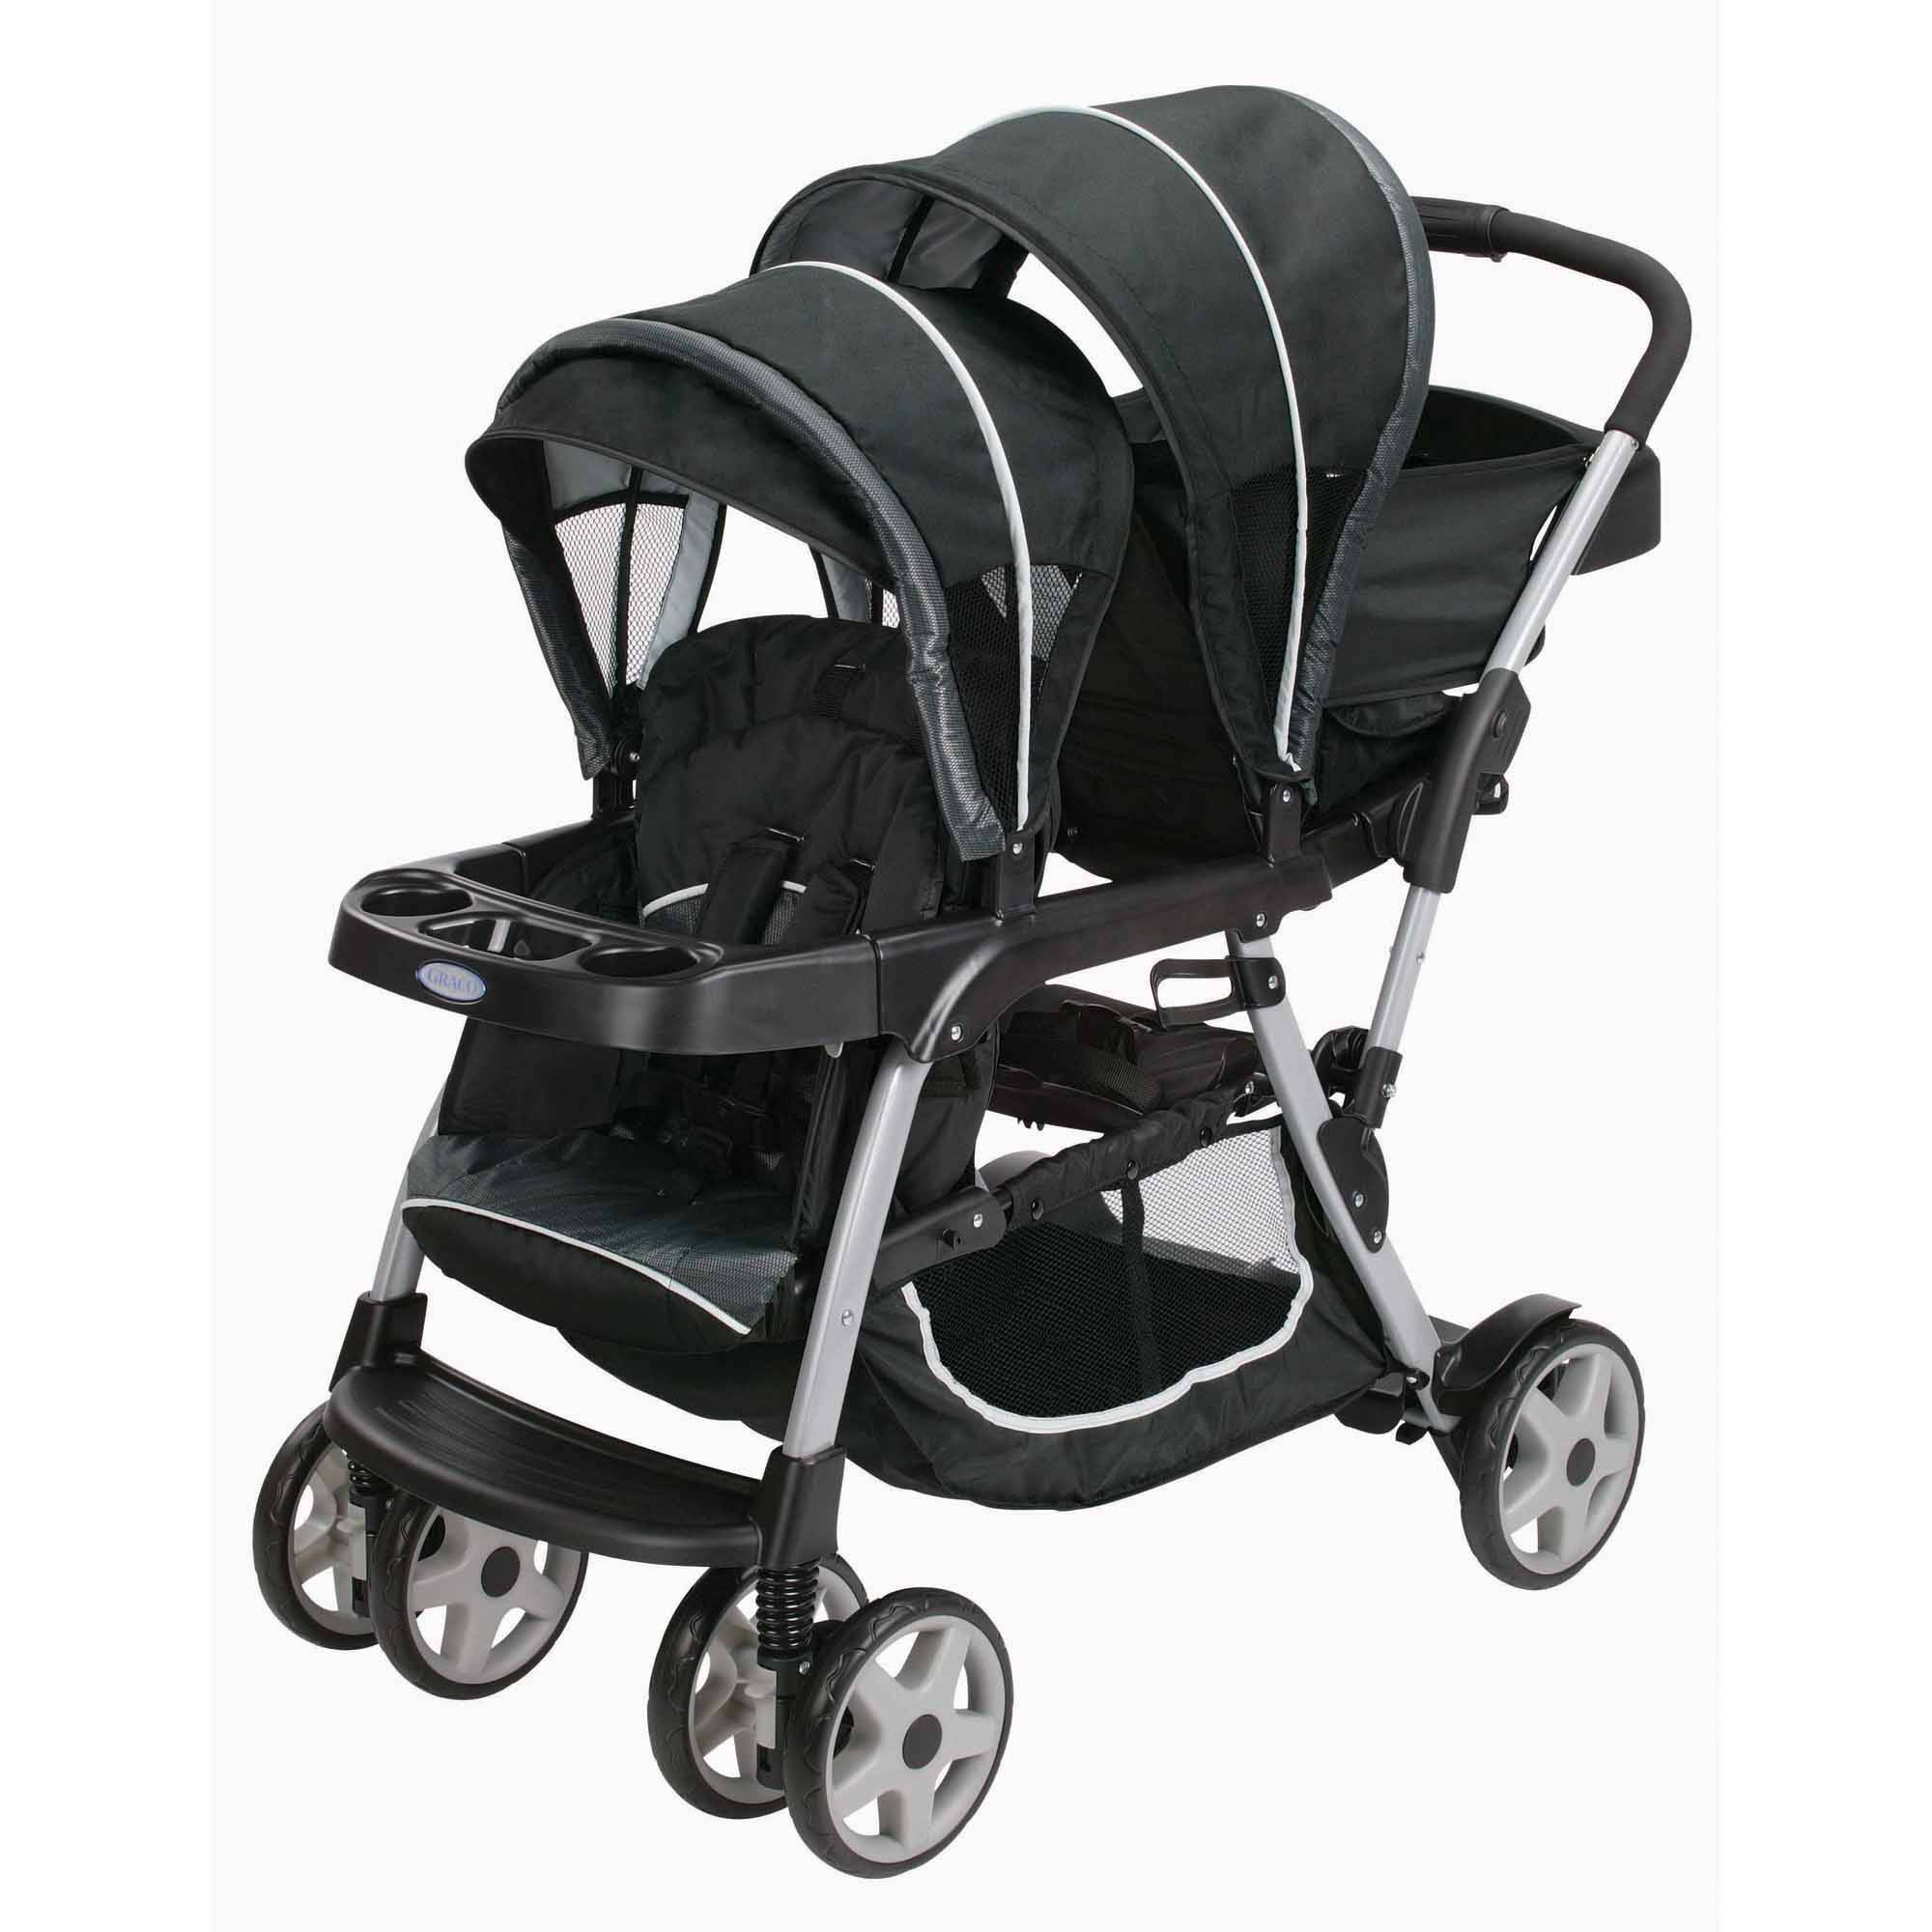 Graco Ready2Grow Click Connect LX Double Stroller, Gotham